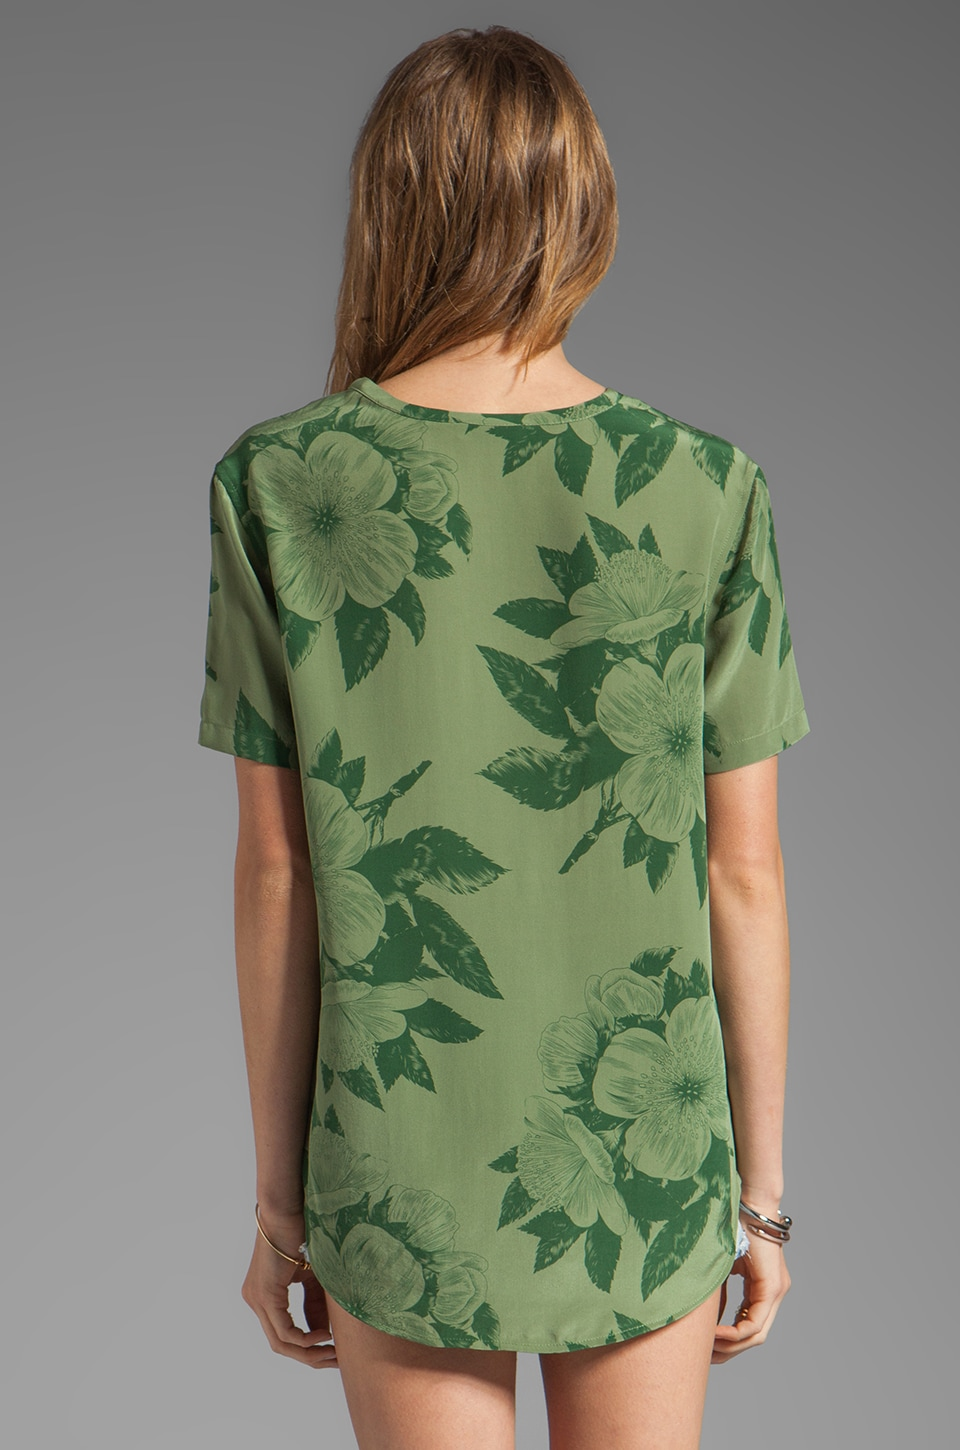 Equipment Tropical Floral Riley Tee in Safari Green